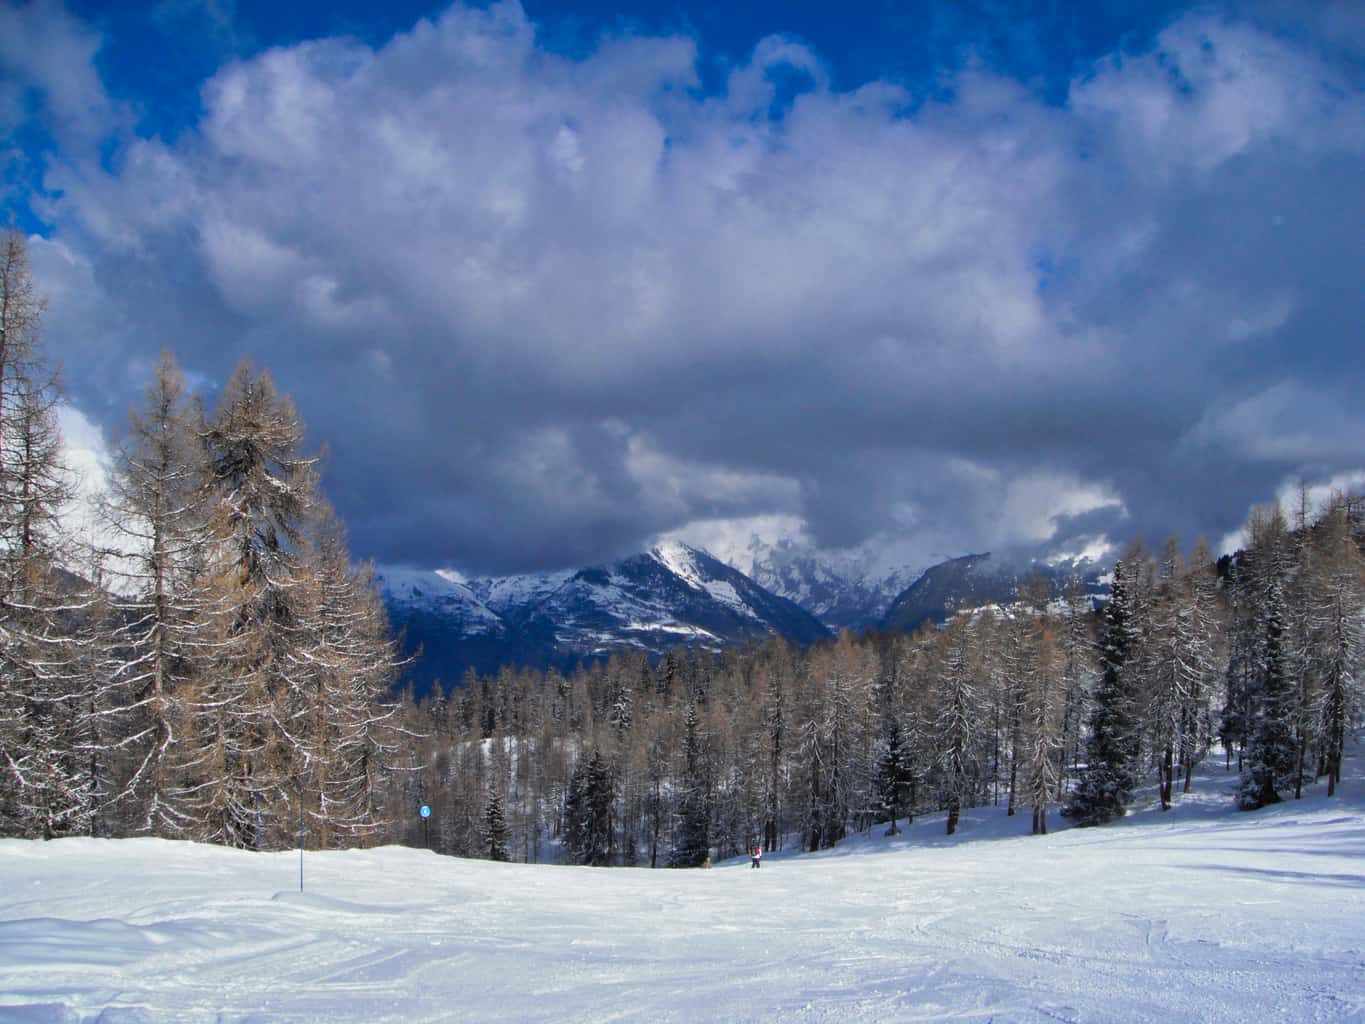 Ski slops with snowy trees with snowy mountains in the background